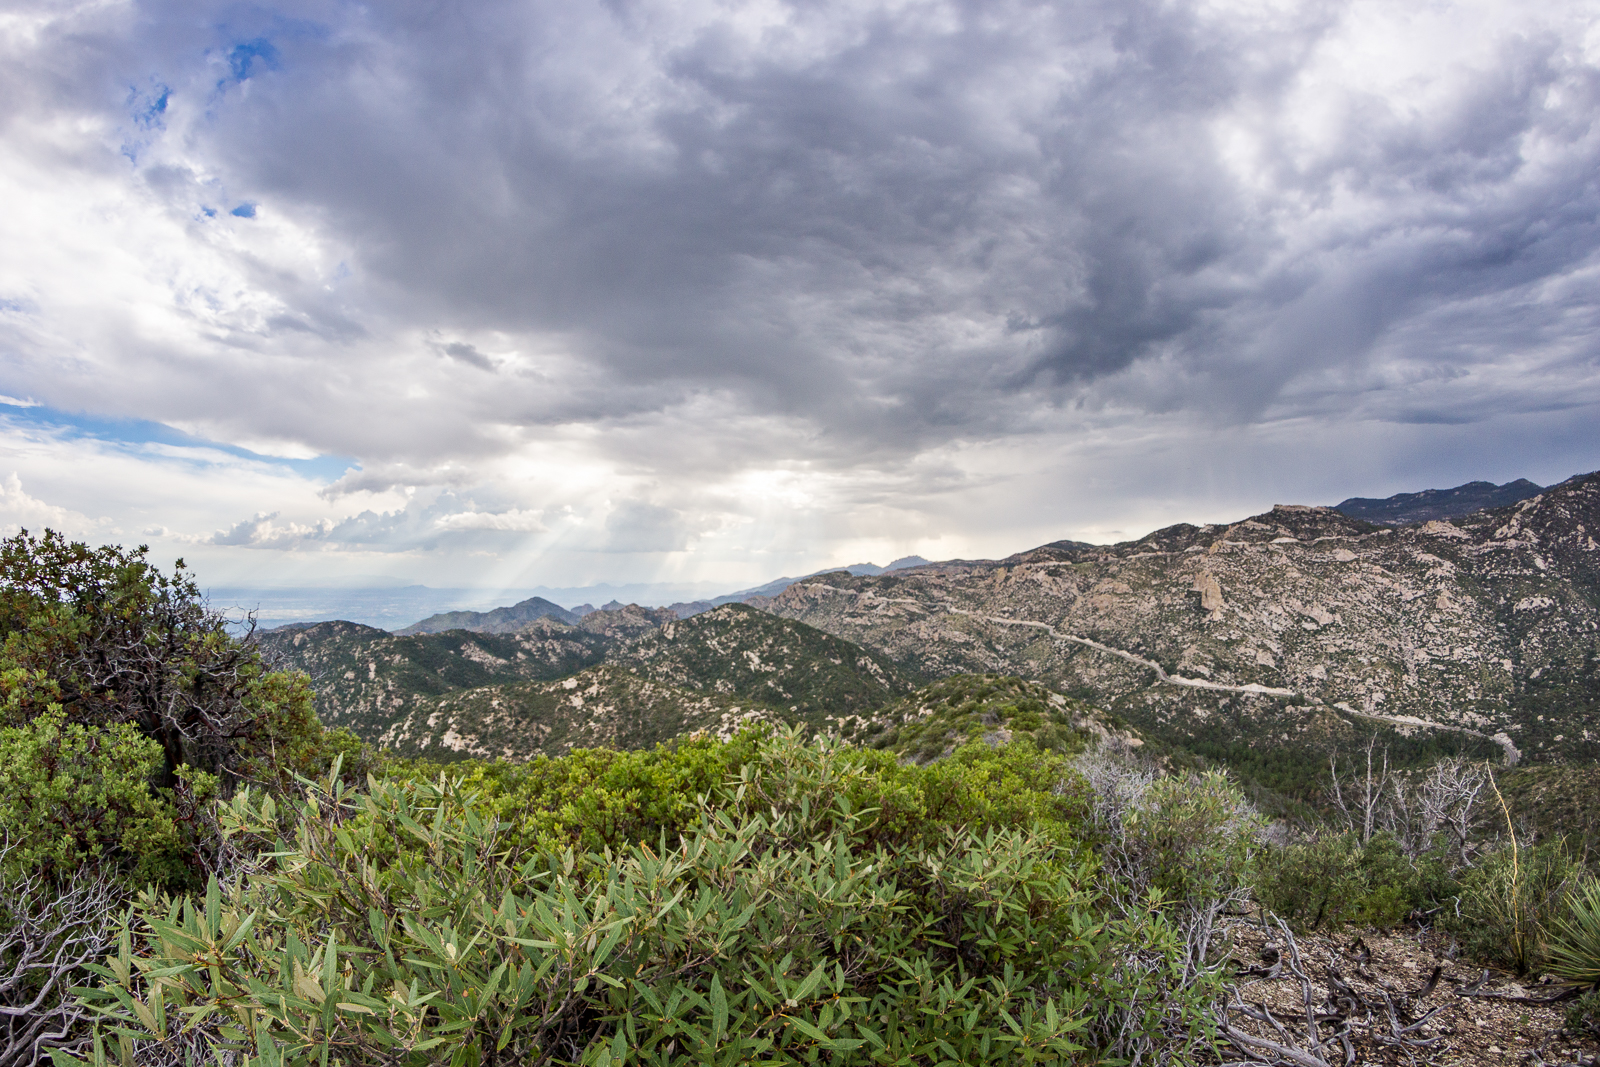 Looking across Bear Canyon from Point 6810 on the ridge east of Bear Canyon. August 2015.